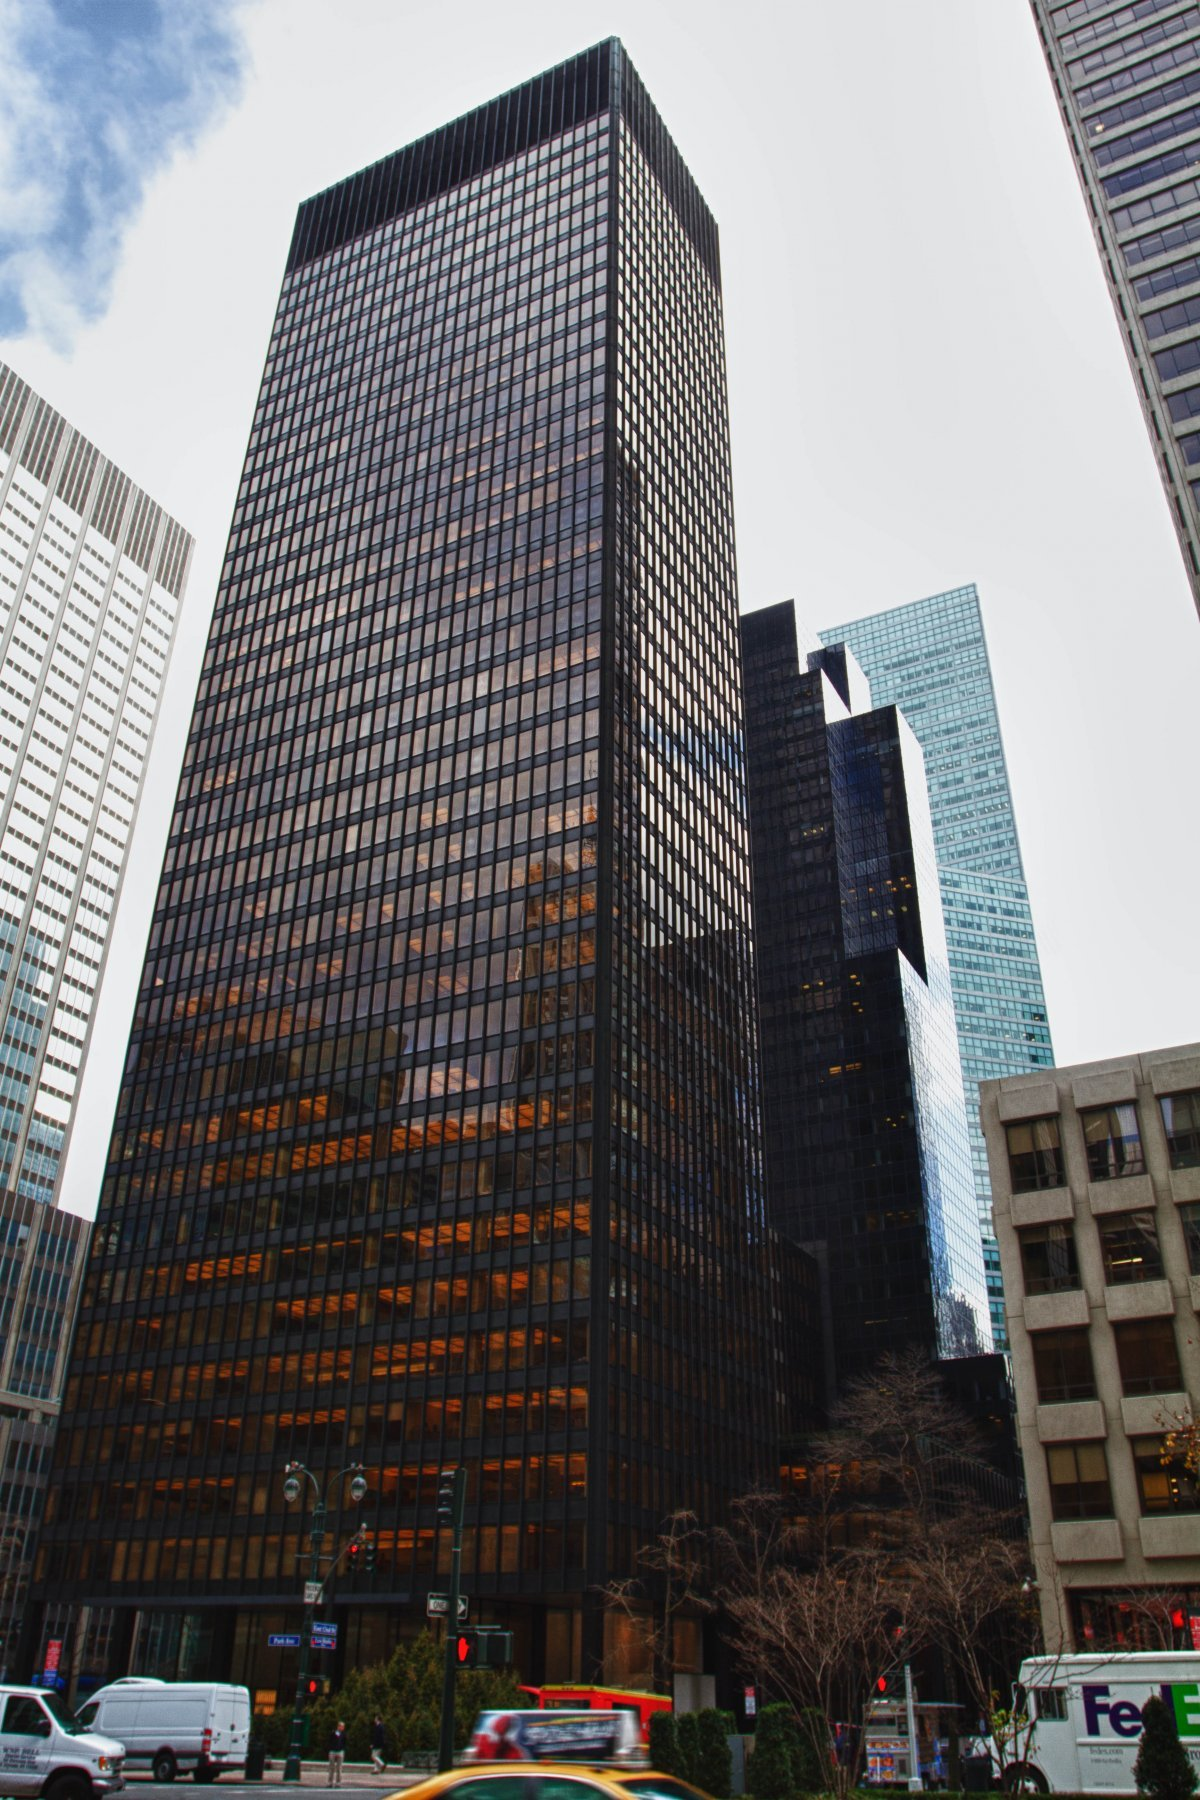 92-the-seagram-building-in-the-heart-of-new-york-city-is-both-conventional-and-unique-epitomising-the-virtues-of-modernism